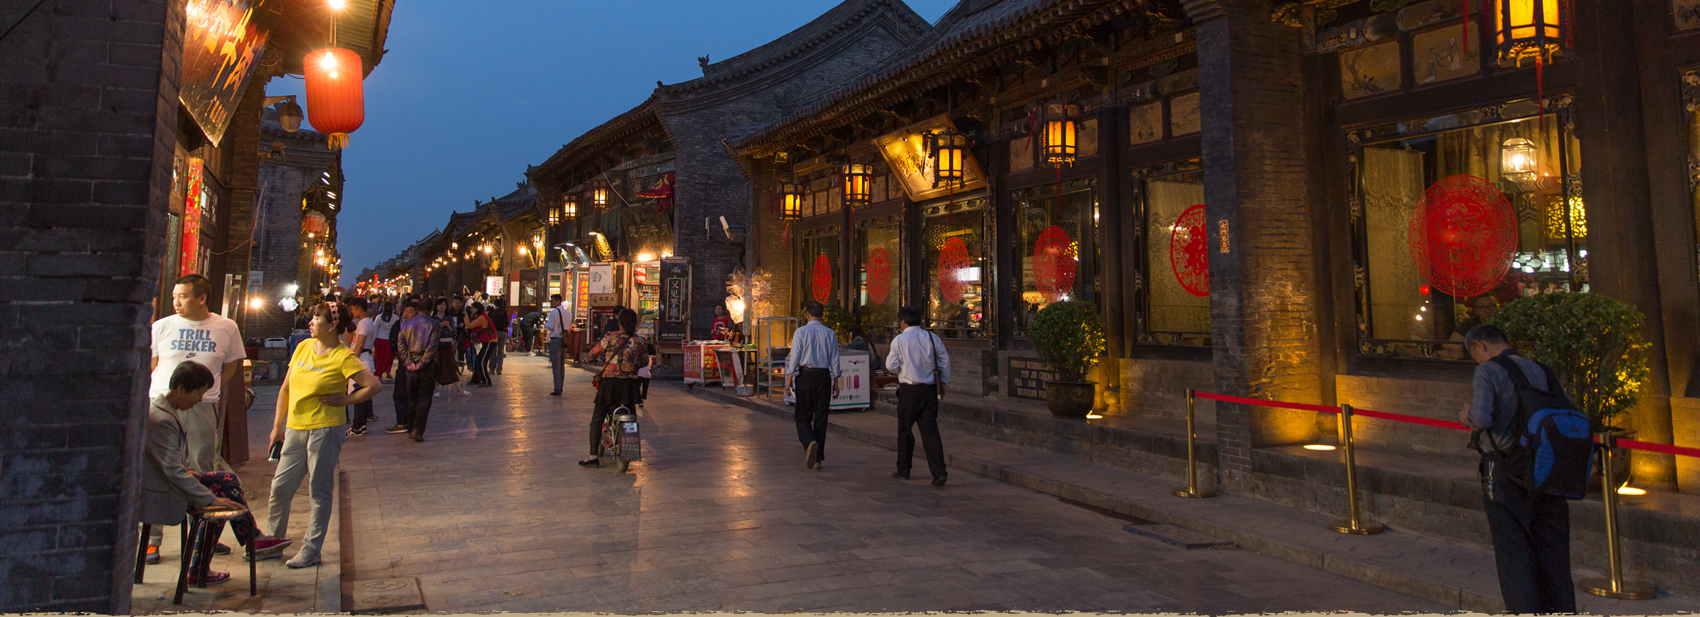 Pingyao – China